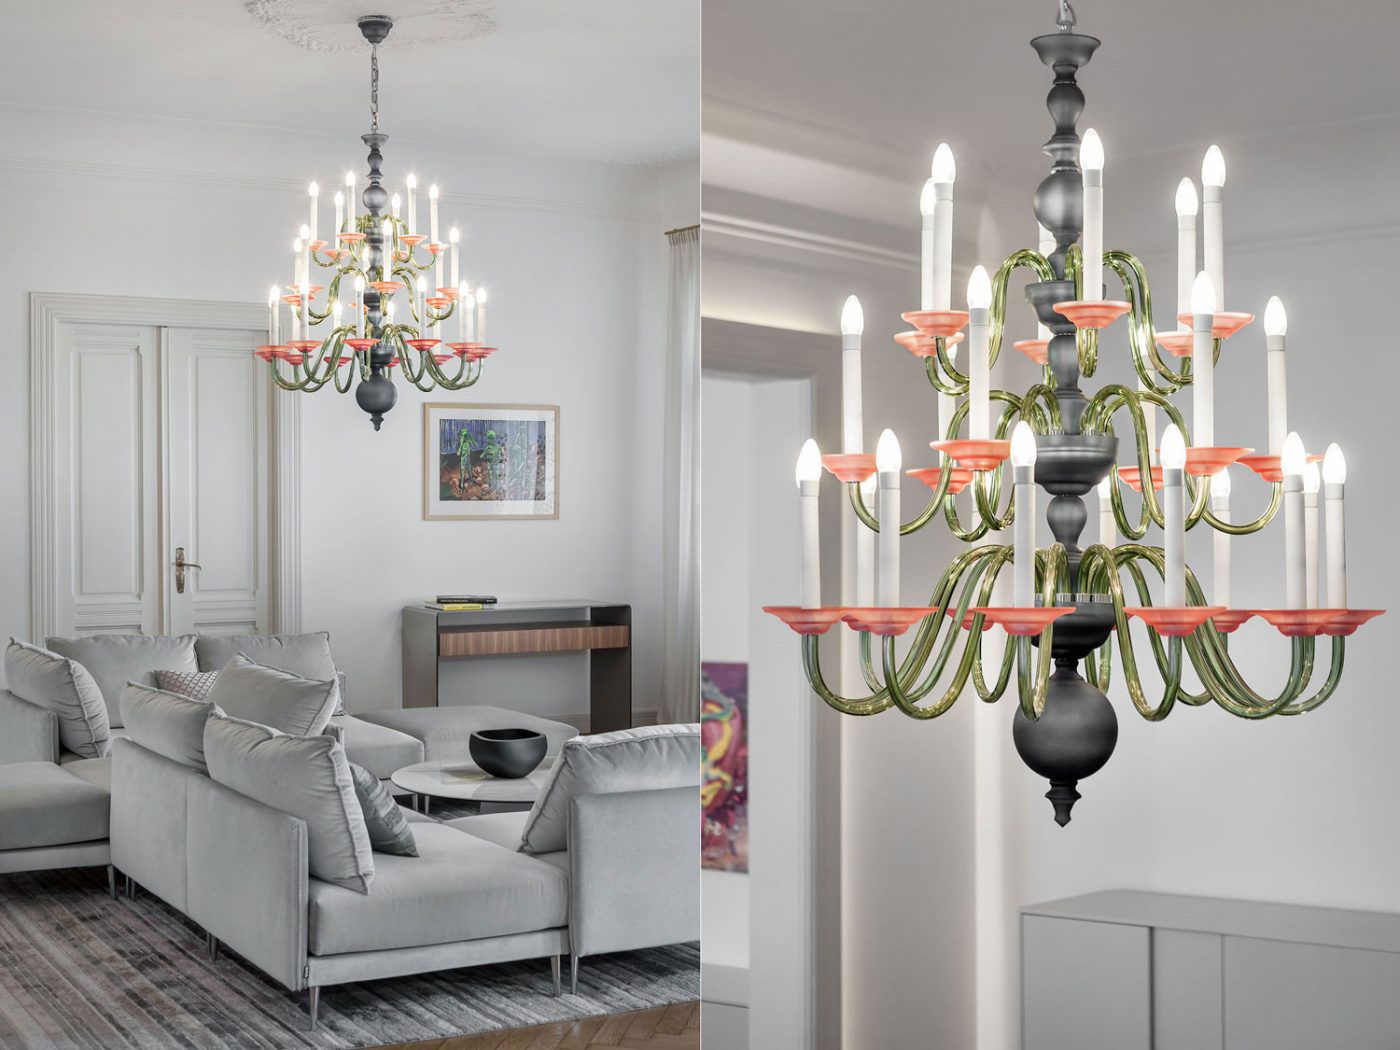 Chandelier Eugene design by Preciosa, interior and product photography Roman Mlejnek.